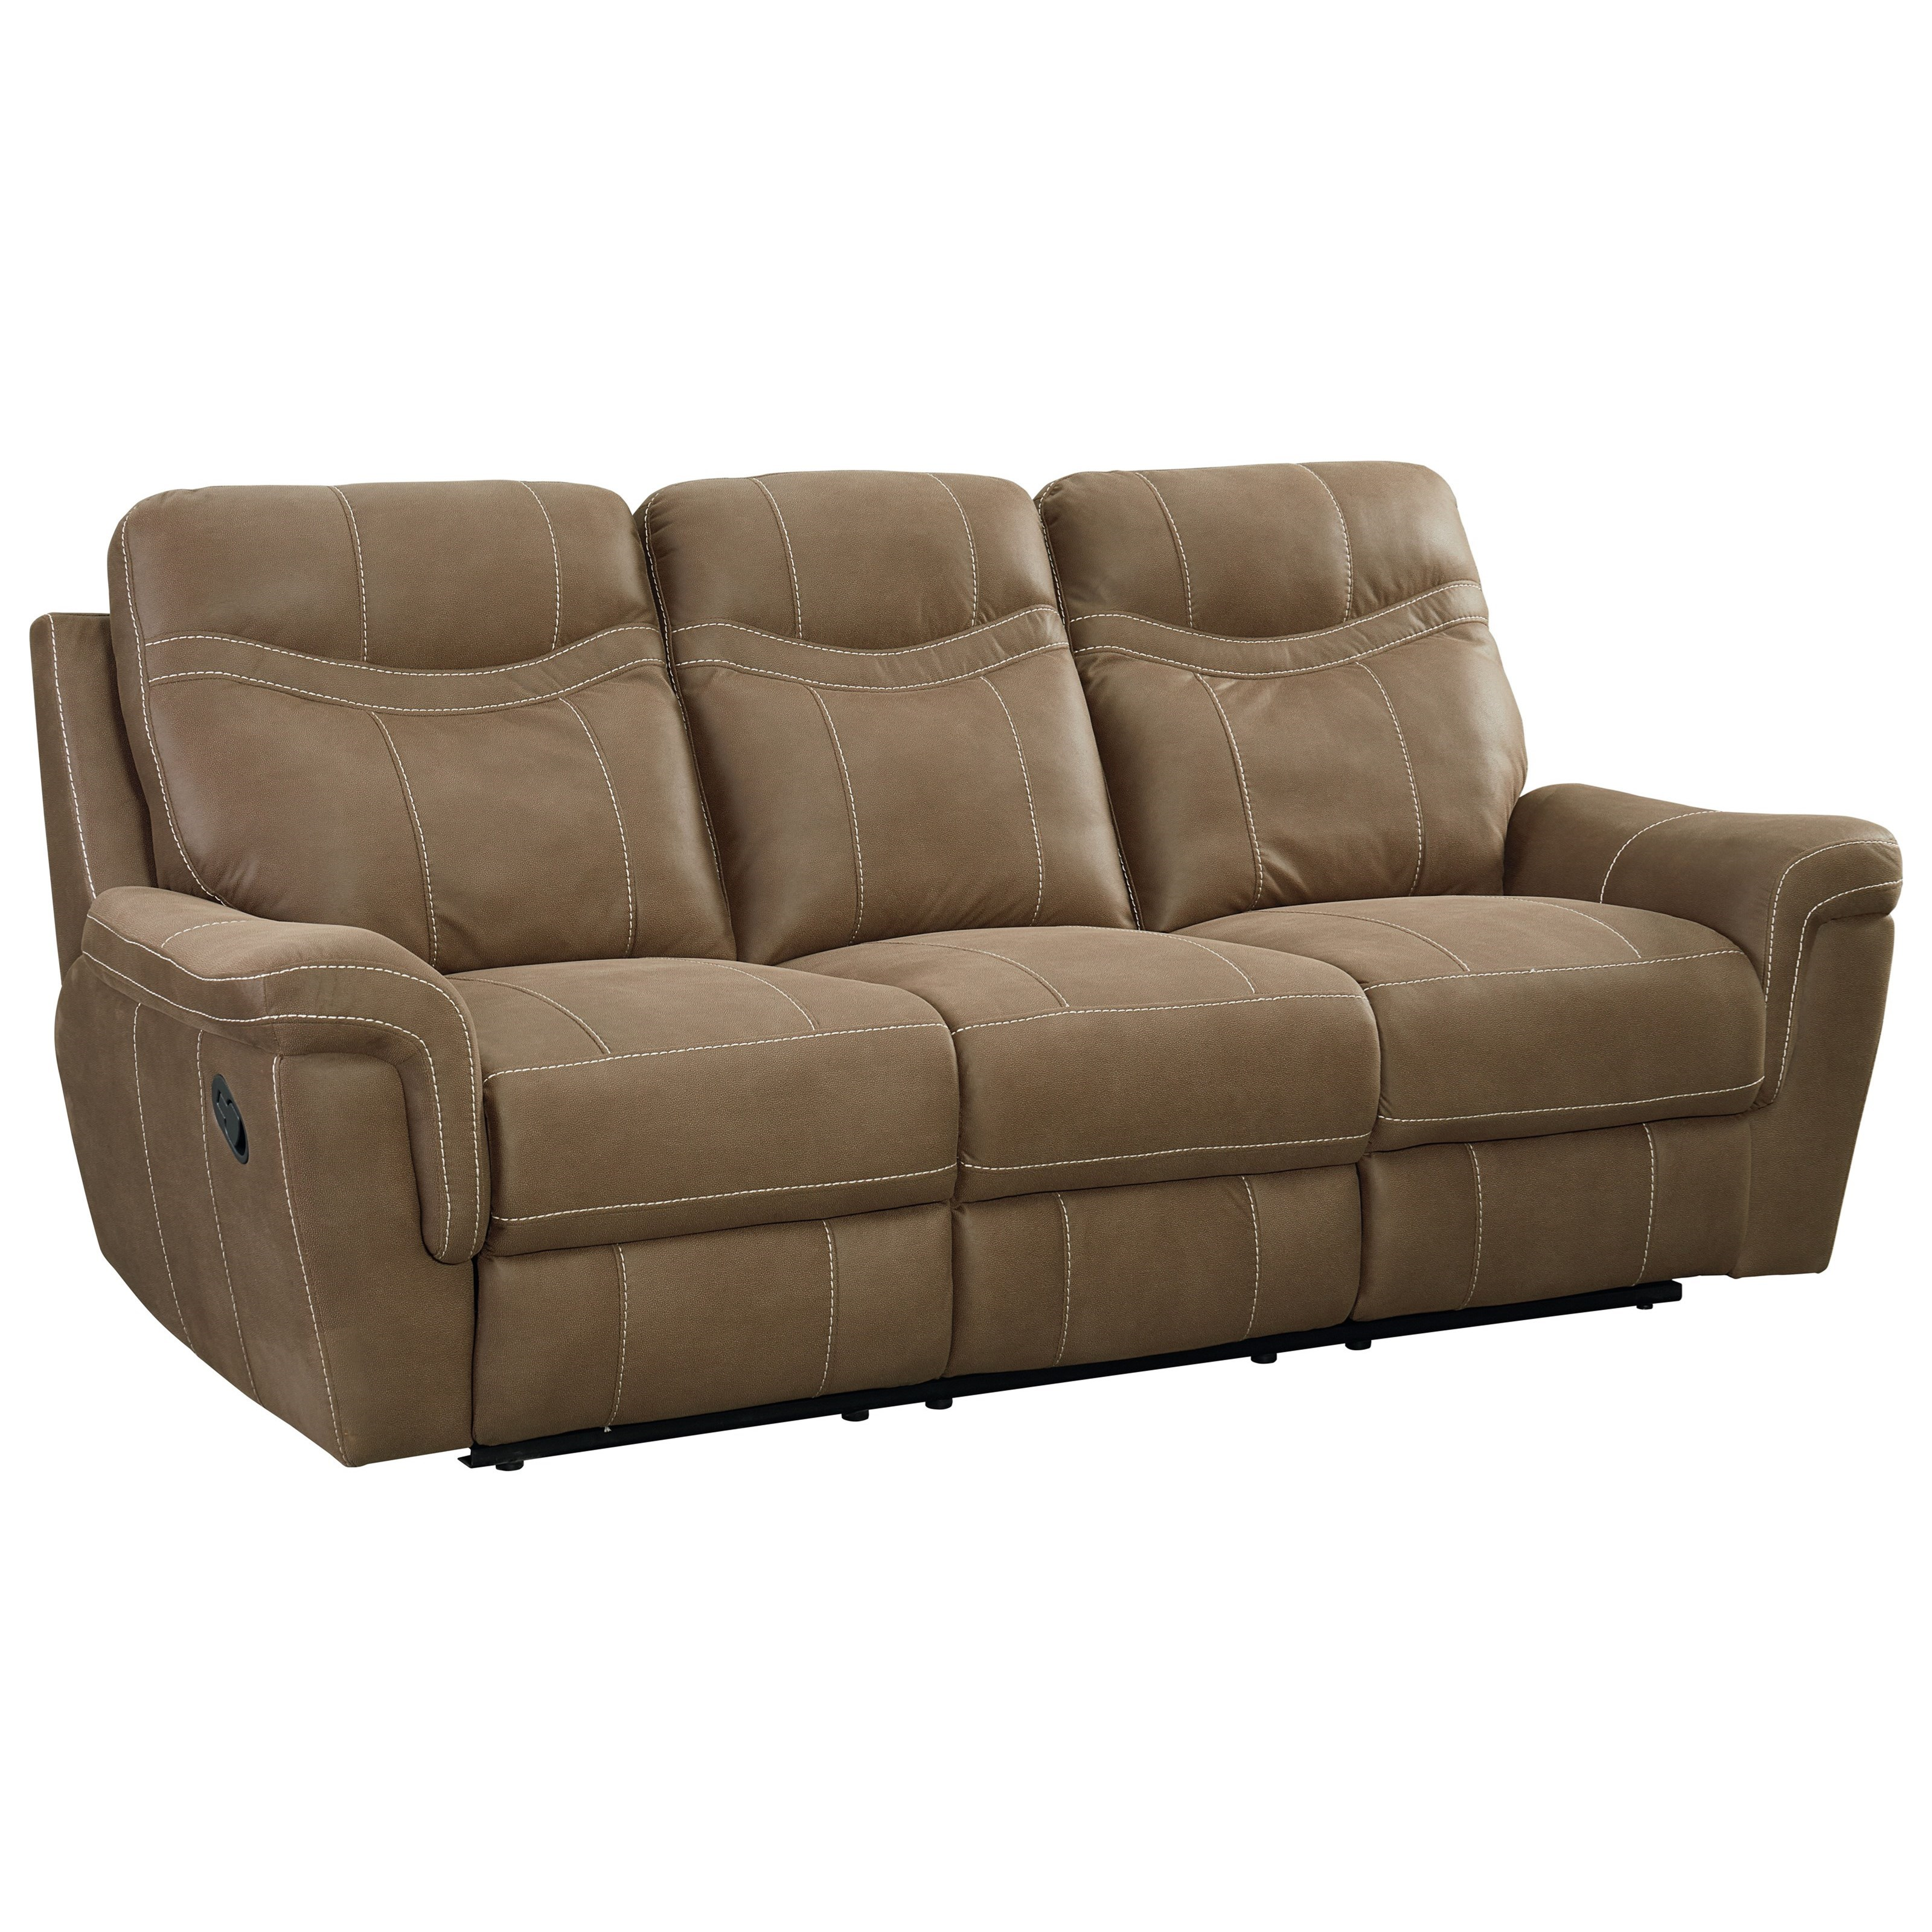 Boardwalk Reclining Sofa by Standard Furniture at Rooms for Less